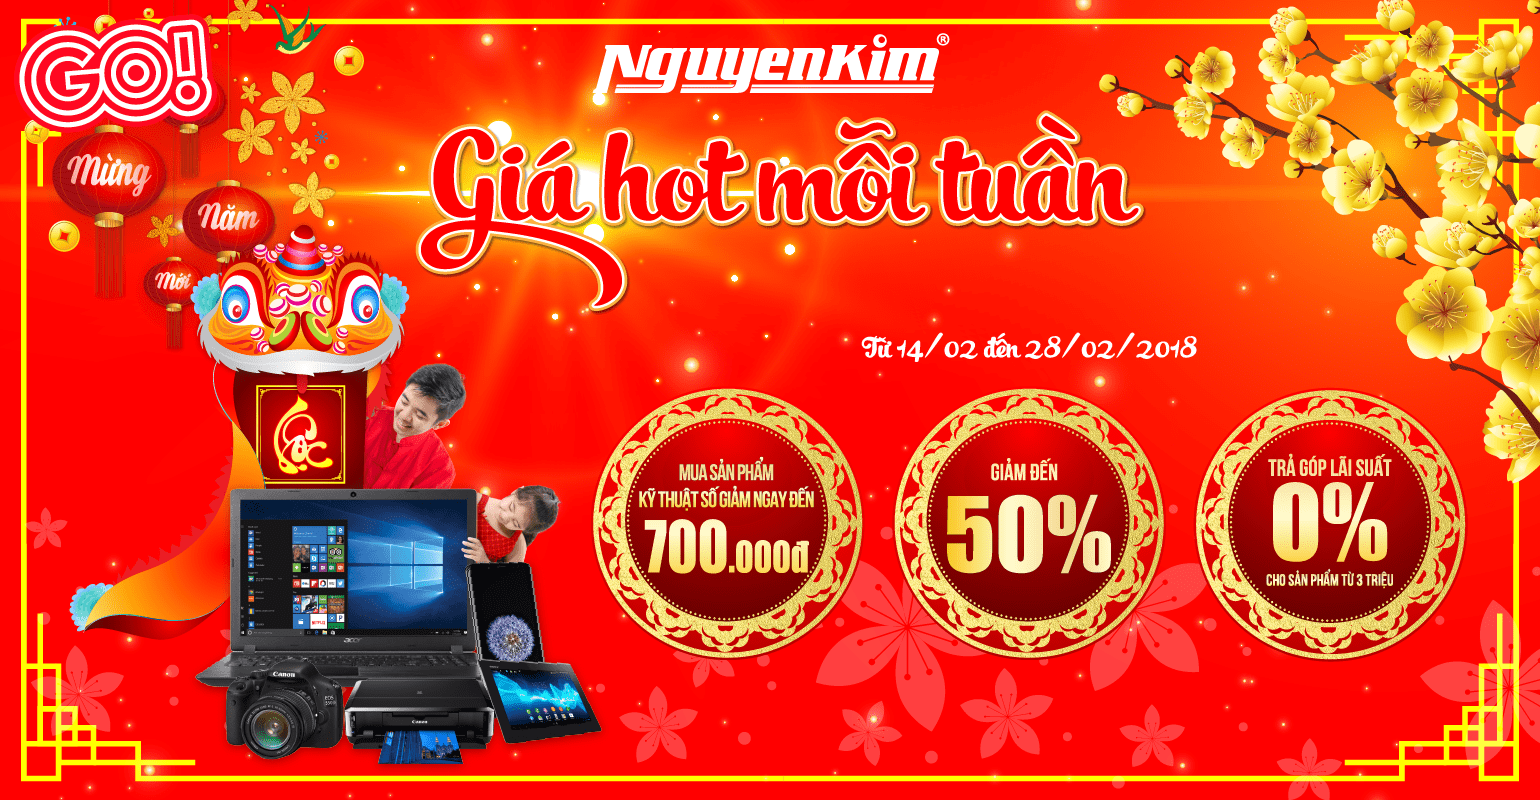 Nguyen Kim promotion at GO! My Tho – Weekly hot prices